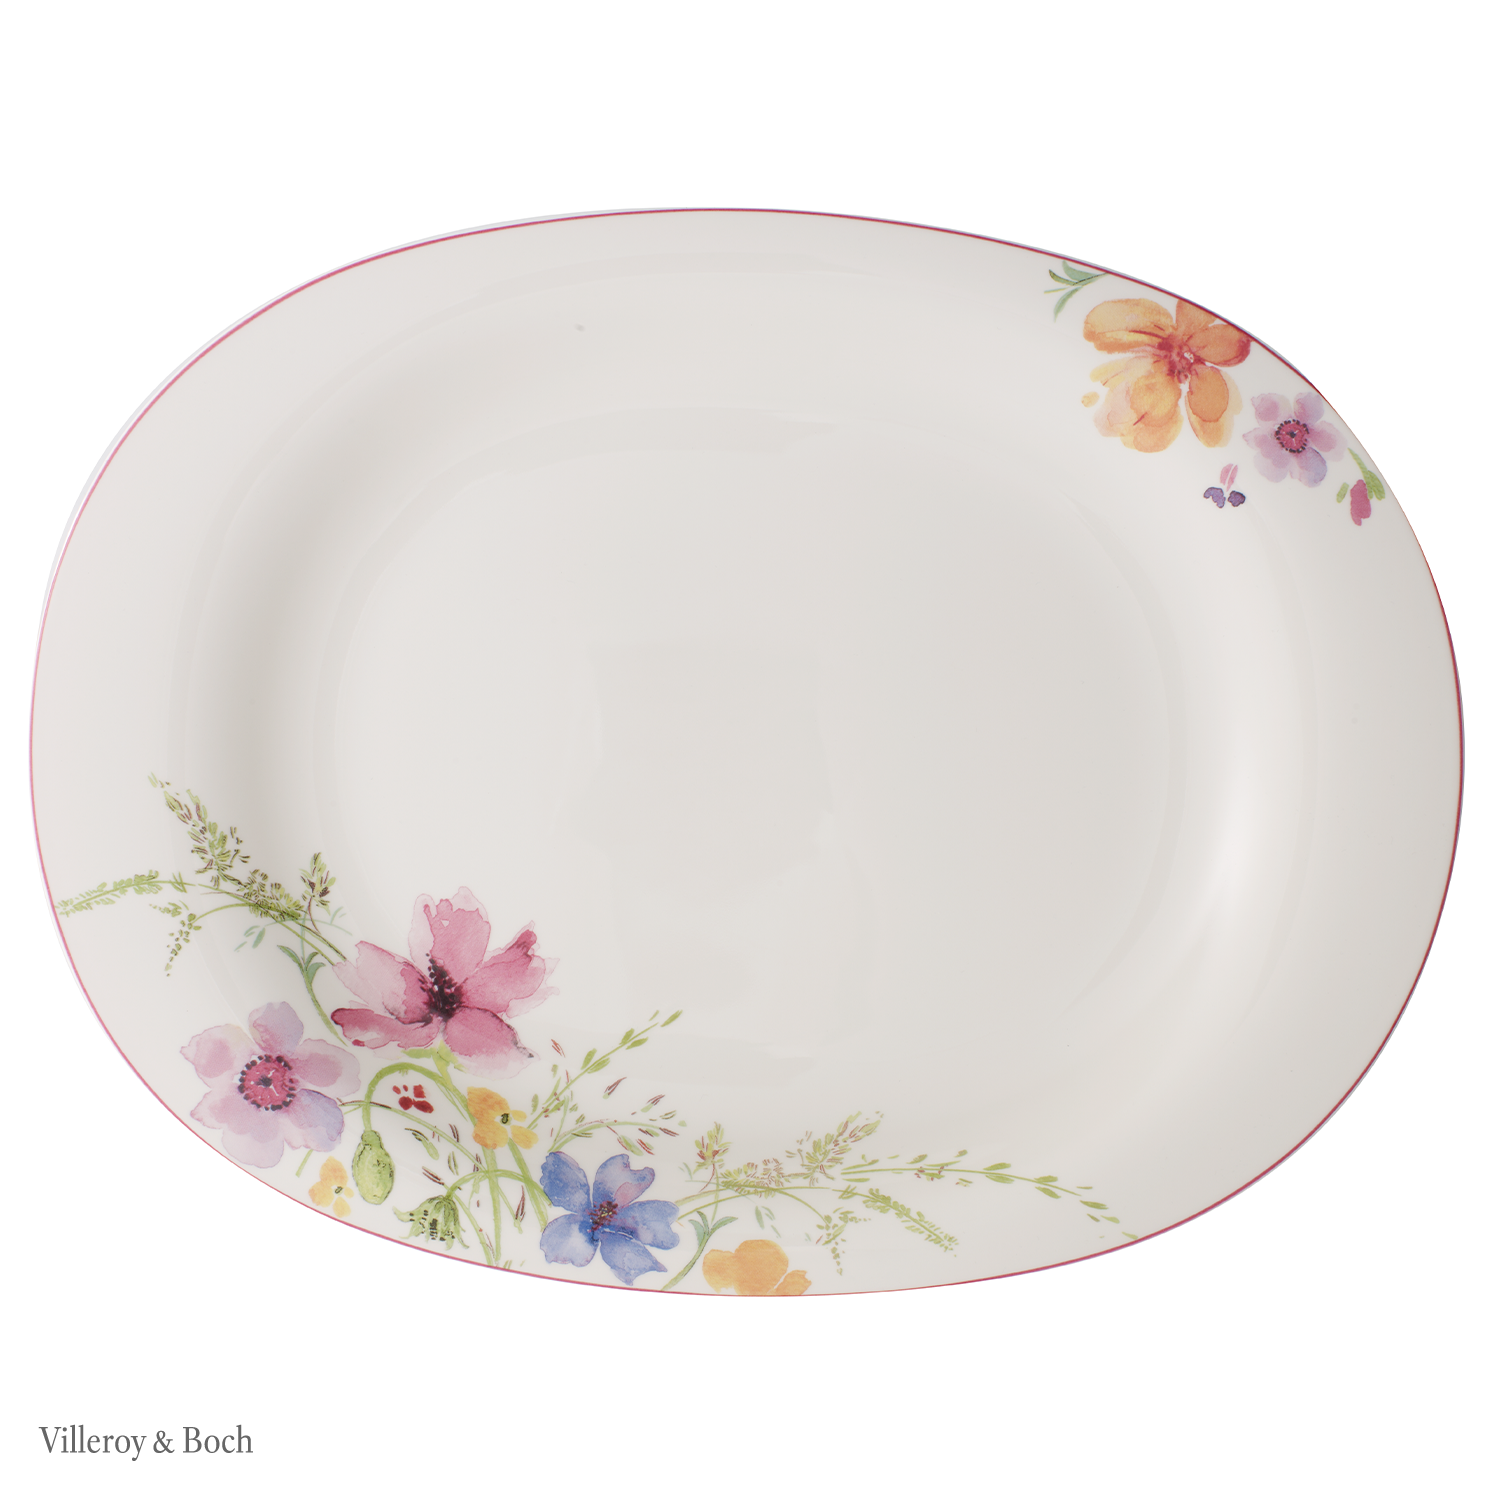 Shop Mariefleur Porcelain Online At Villeroy Boch Create A Sea Of Flowers With This Romantic Floral Tableware Inspired By Nat In 2020 Villeroy Porzellan Servierten